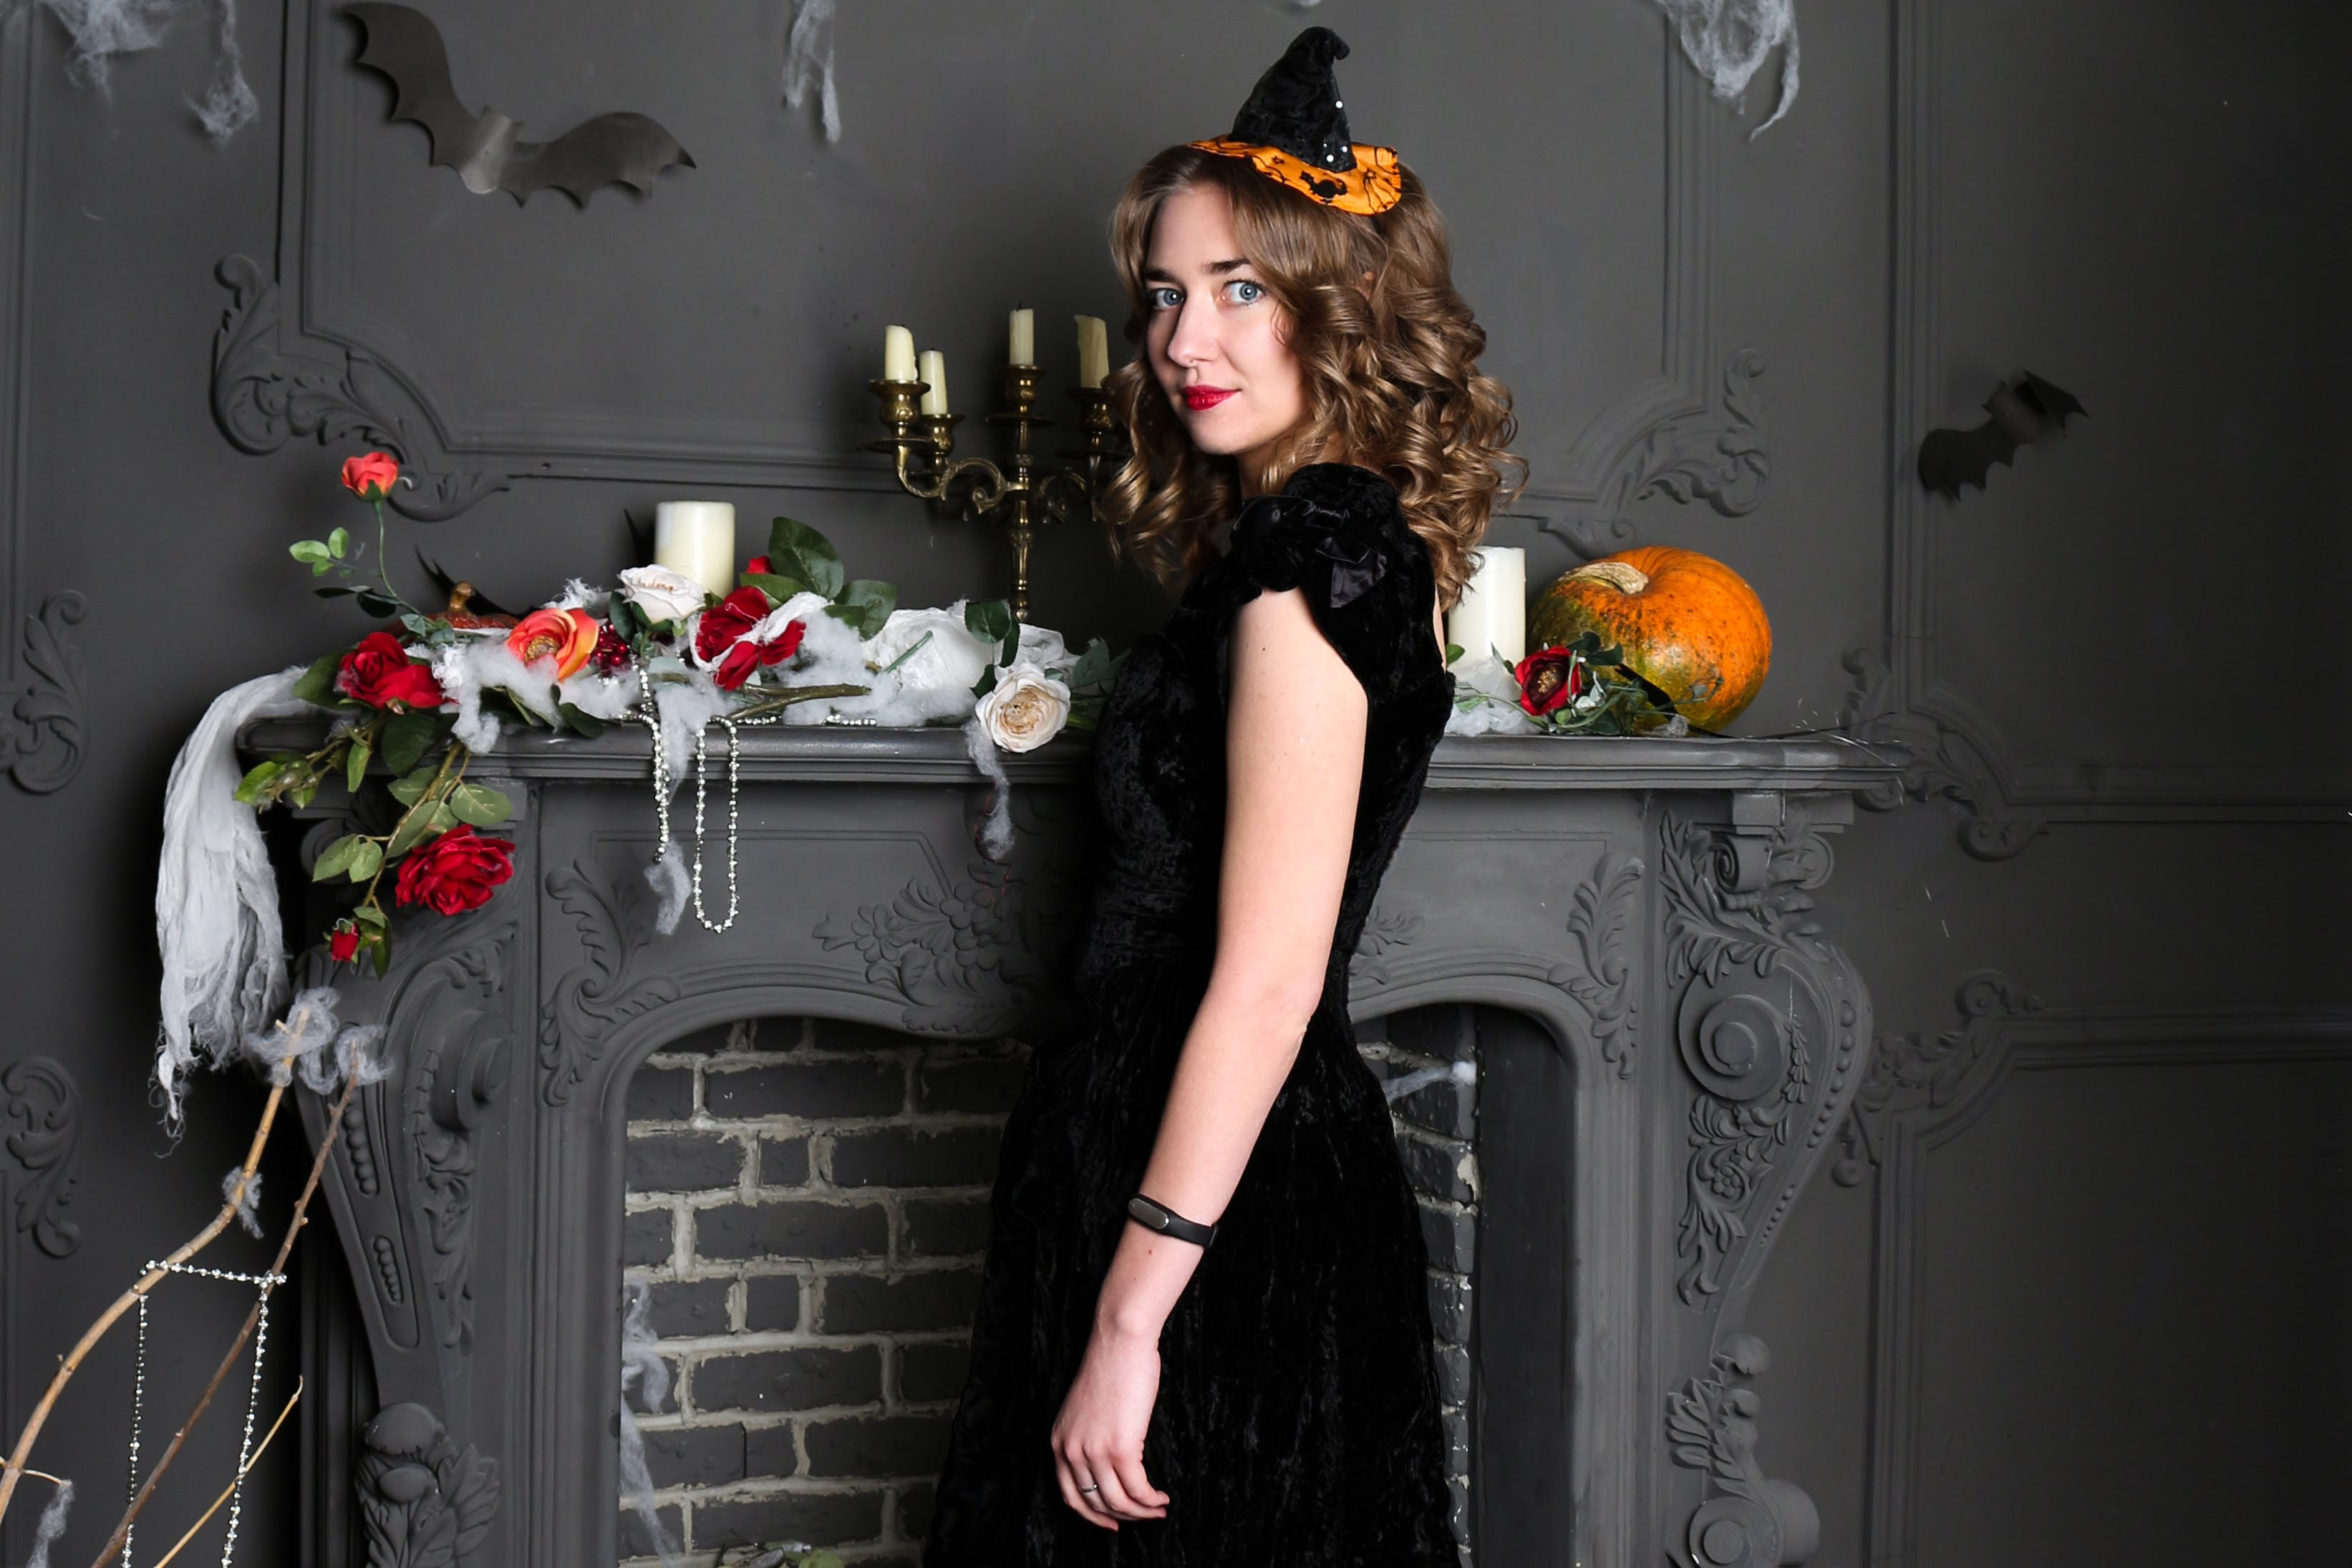 Woman Wearing Black Dress for Halloween Party